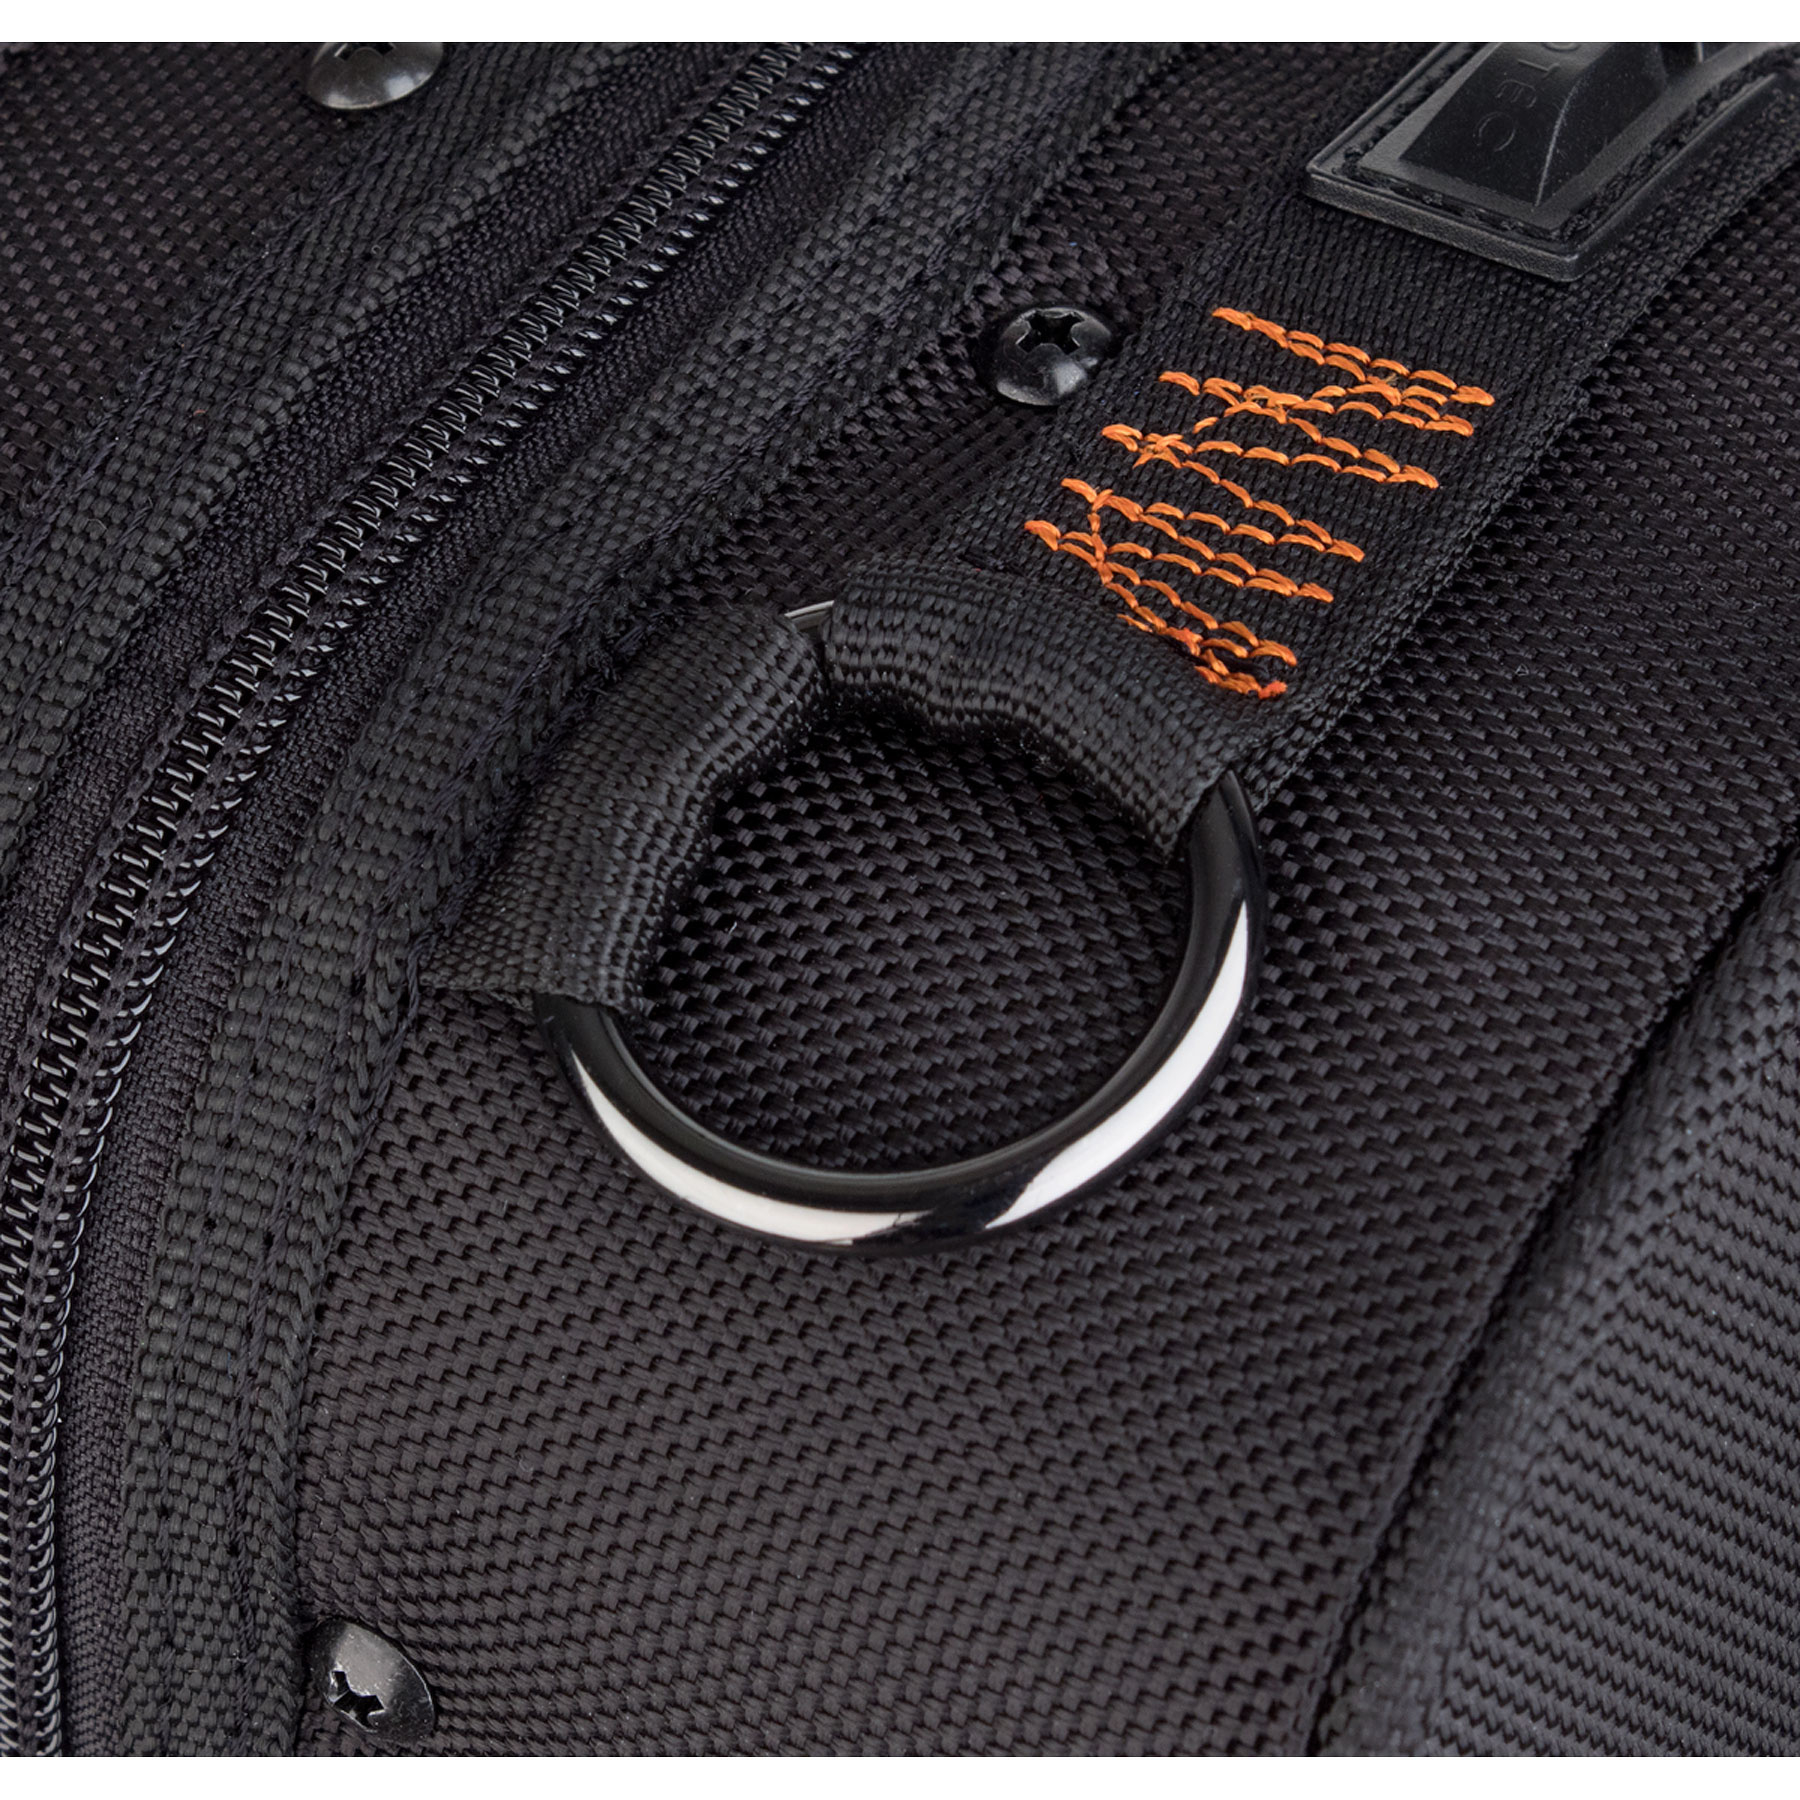 Protec Protec Pro Pac Screwbell French Horn Case